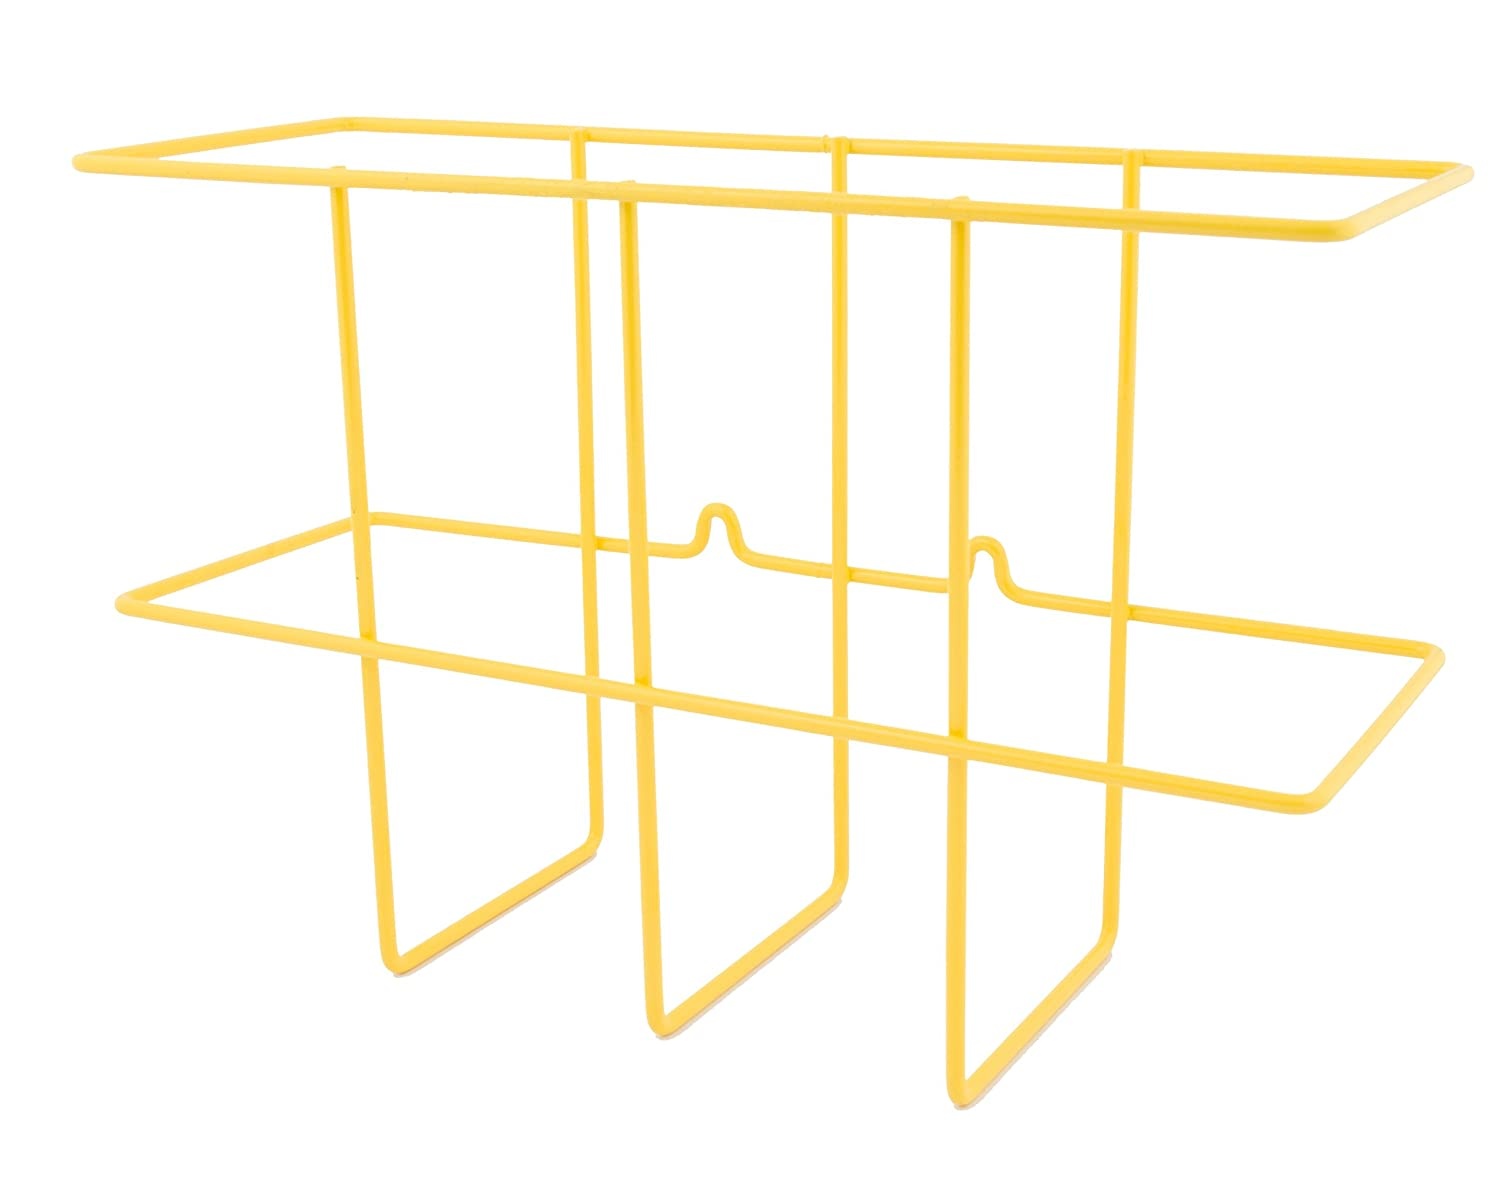 Zing 7199 eco binder holder wire wall rack hardware included zing 7199 eco binder holder wire wall rack hardware included amazon industrial scientific malvernweather Choice Image